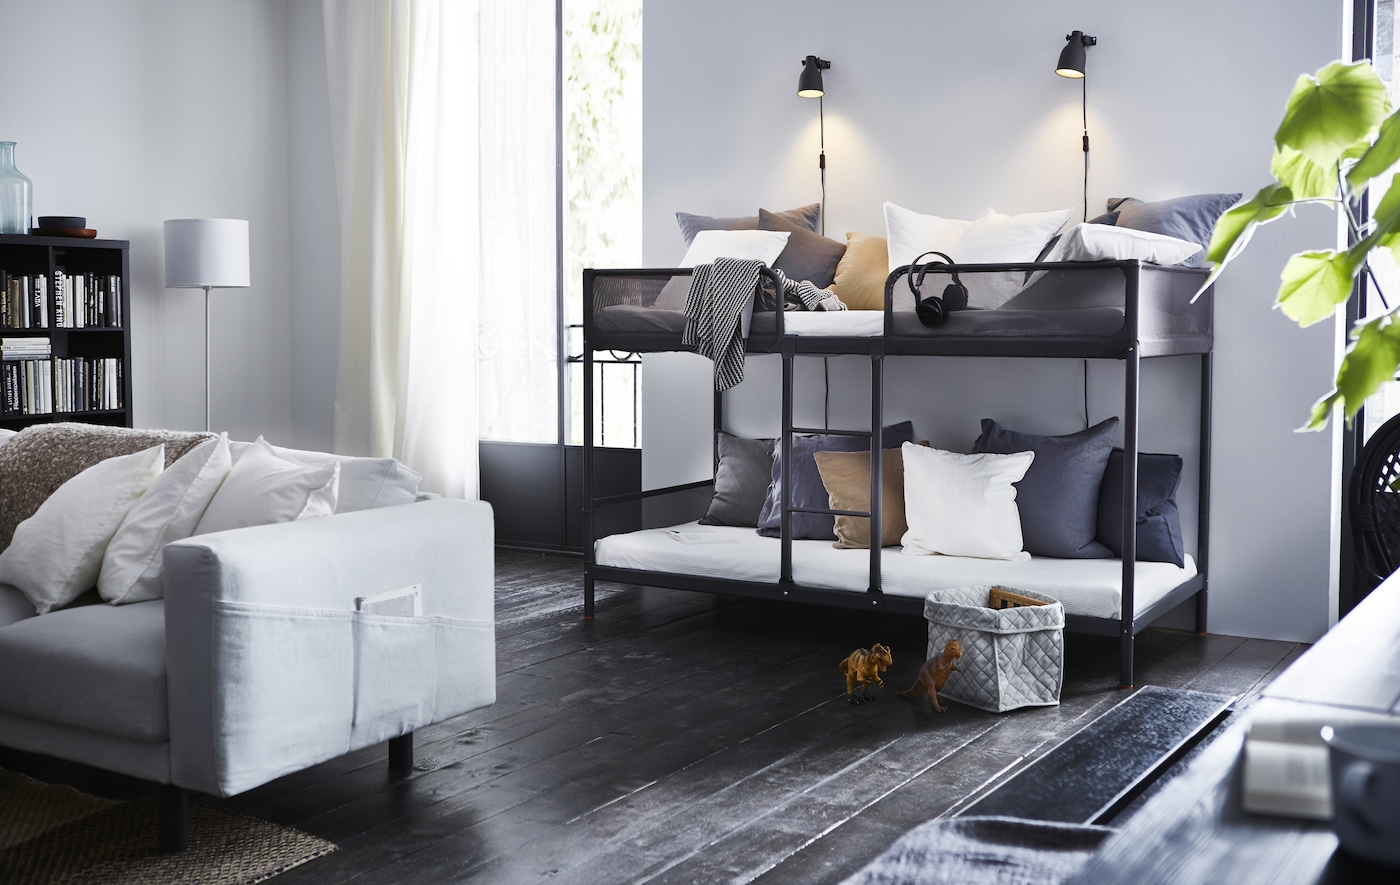 A bunk bed in a living room with gray and white pillows.